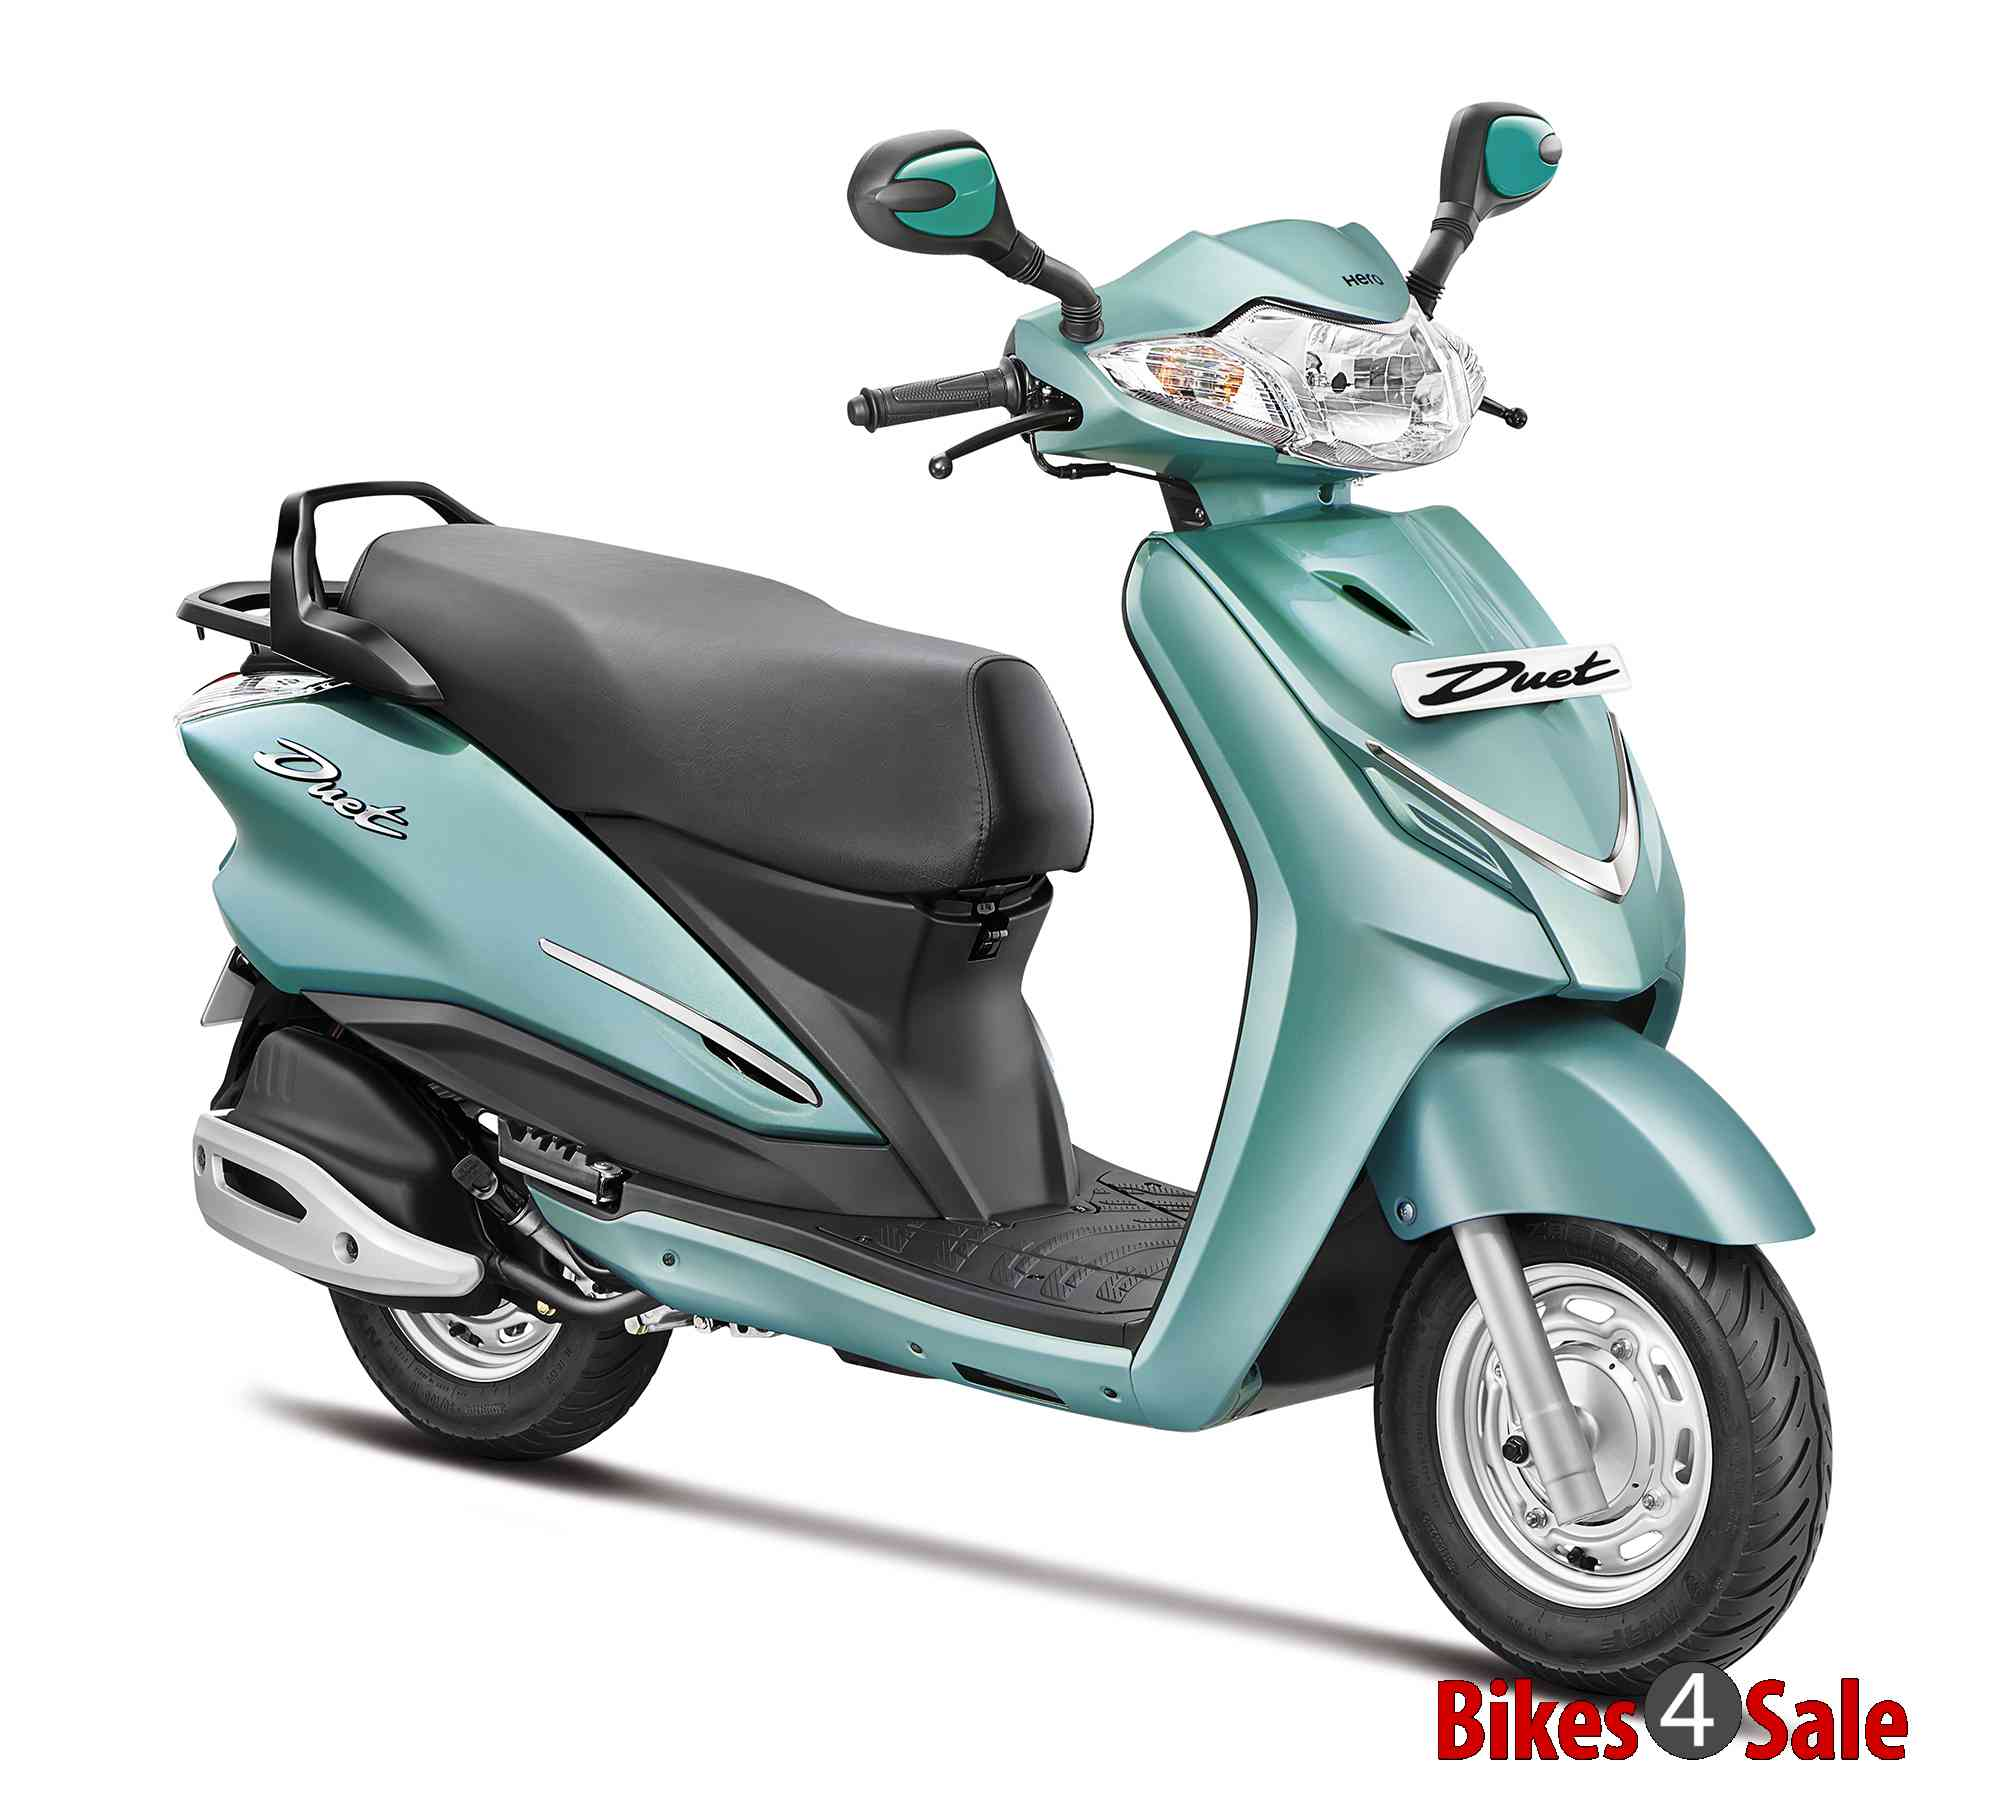 Vespa Scooter Green Colour